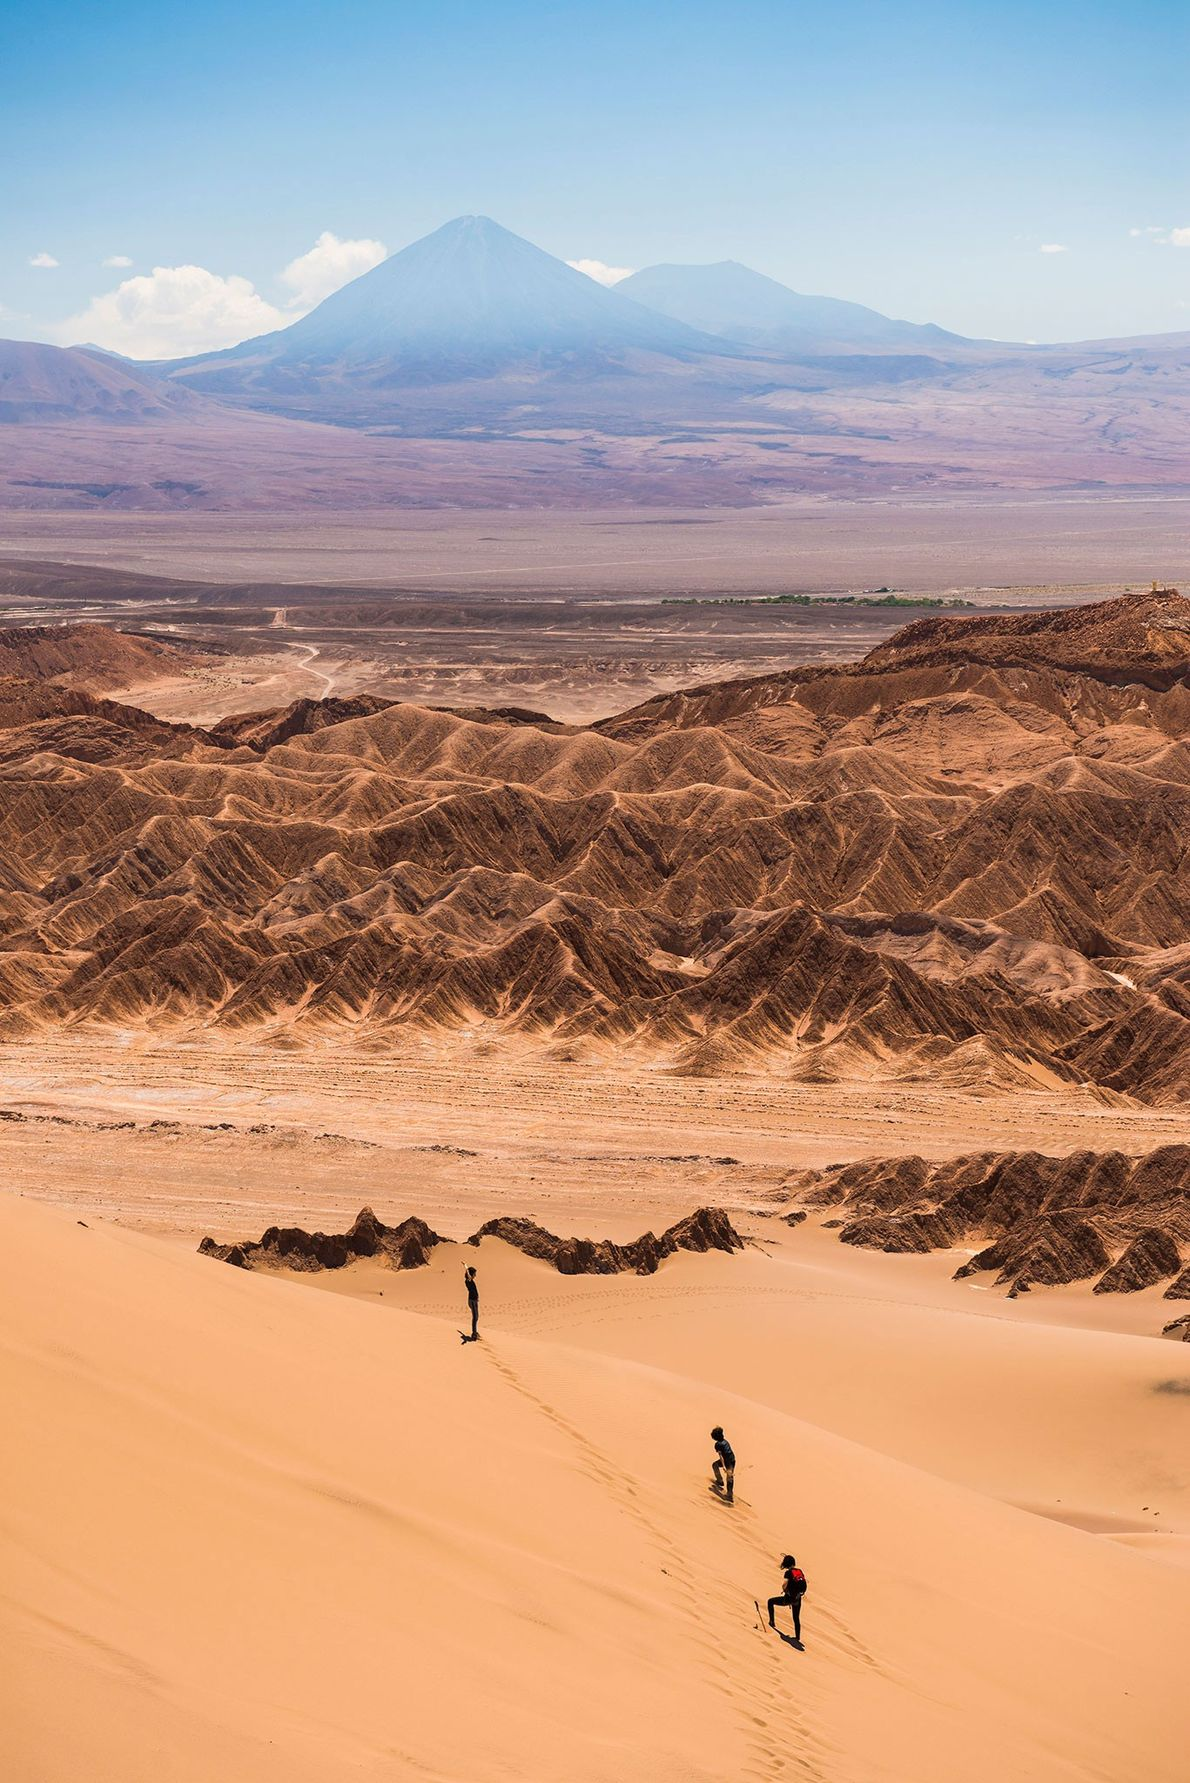 Hikers walk across the Valley de la Muerte sand dunes in Chile's Atacama Desert. The valley ...